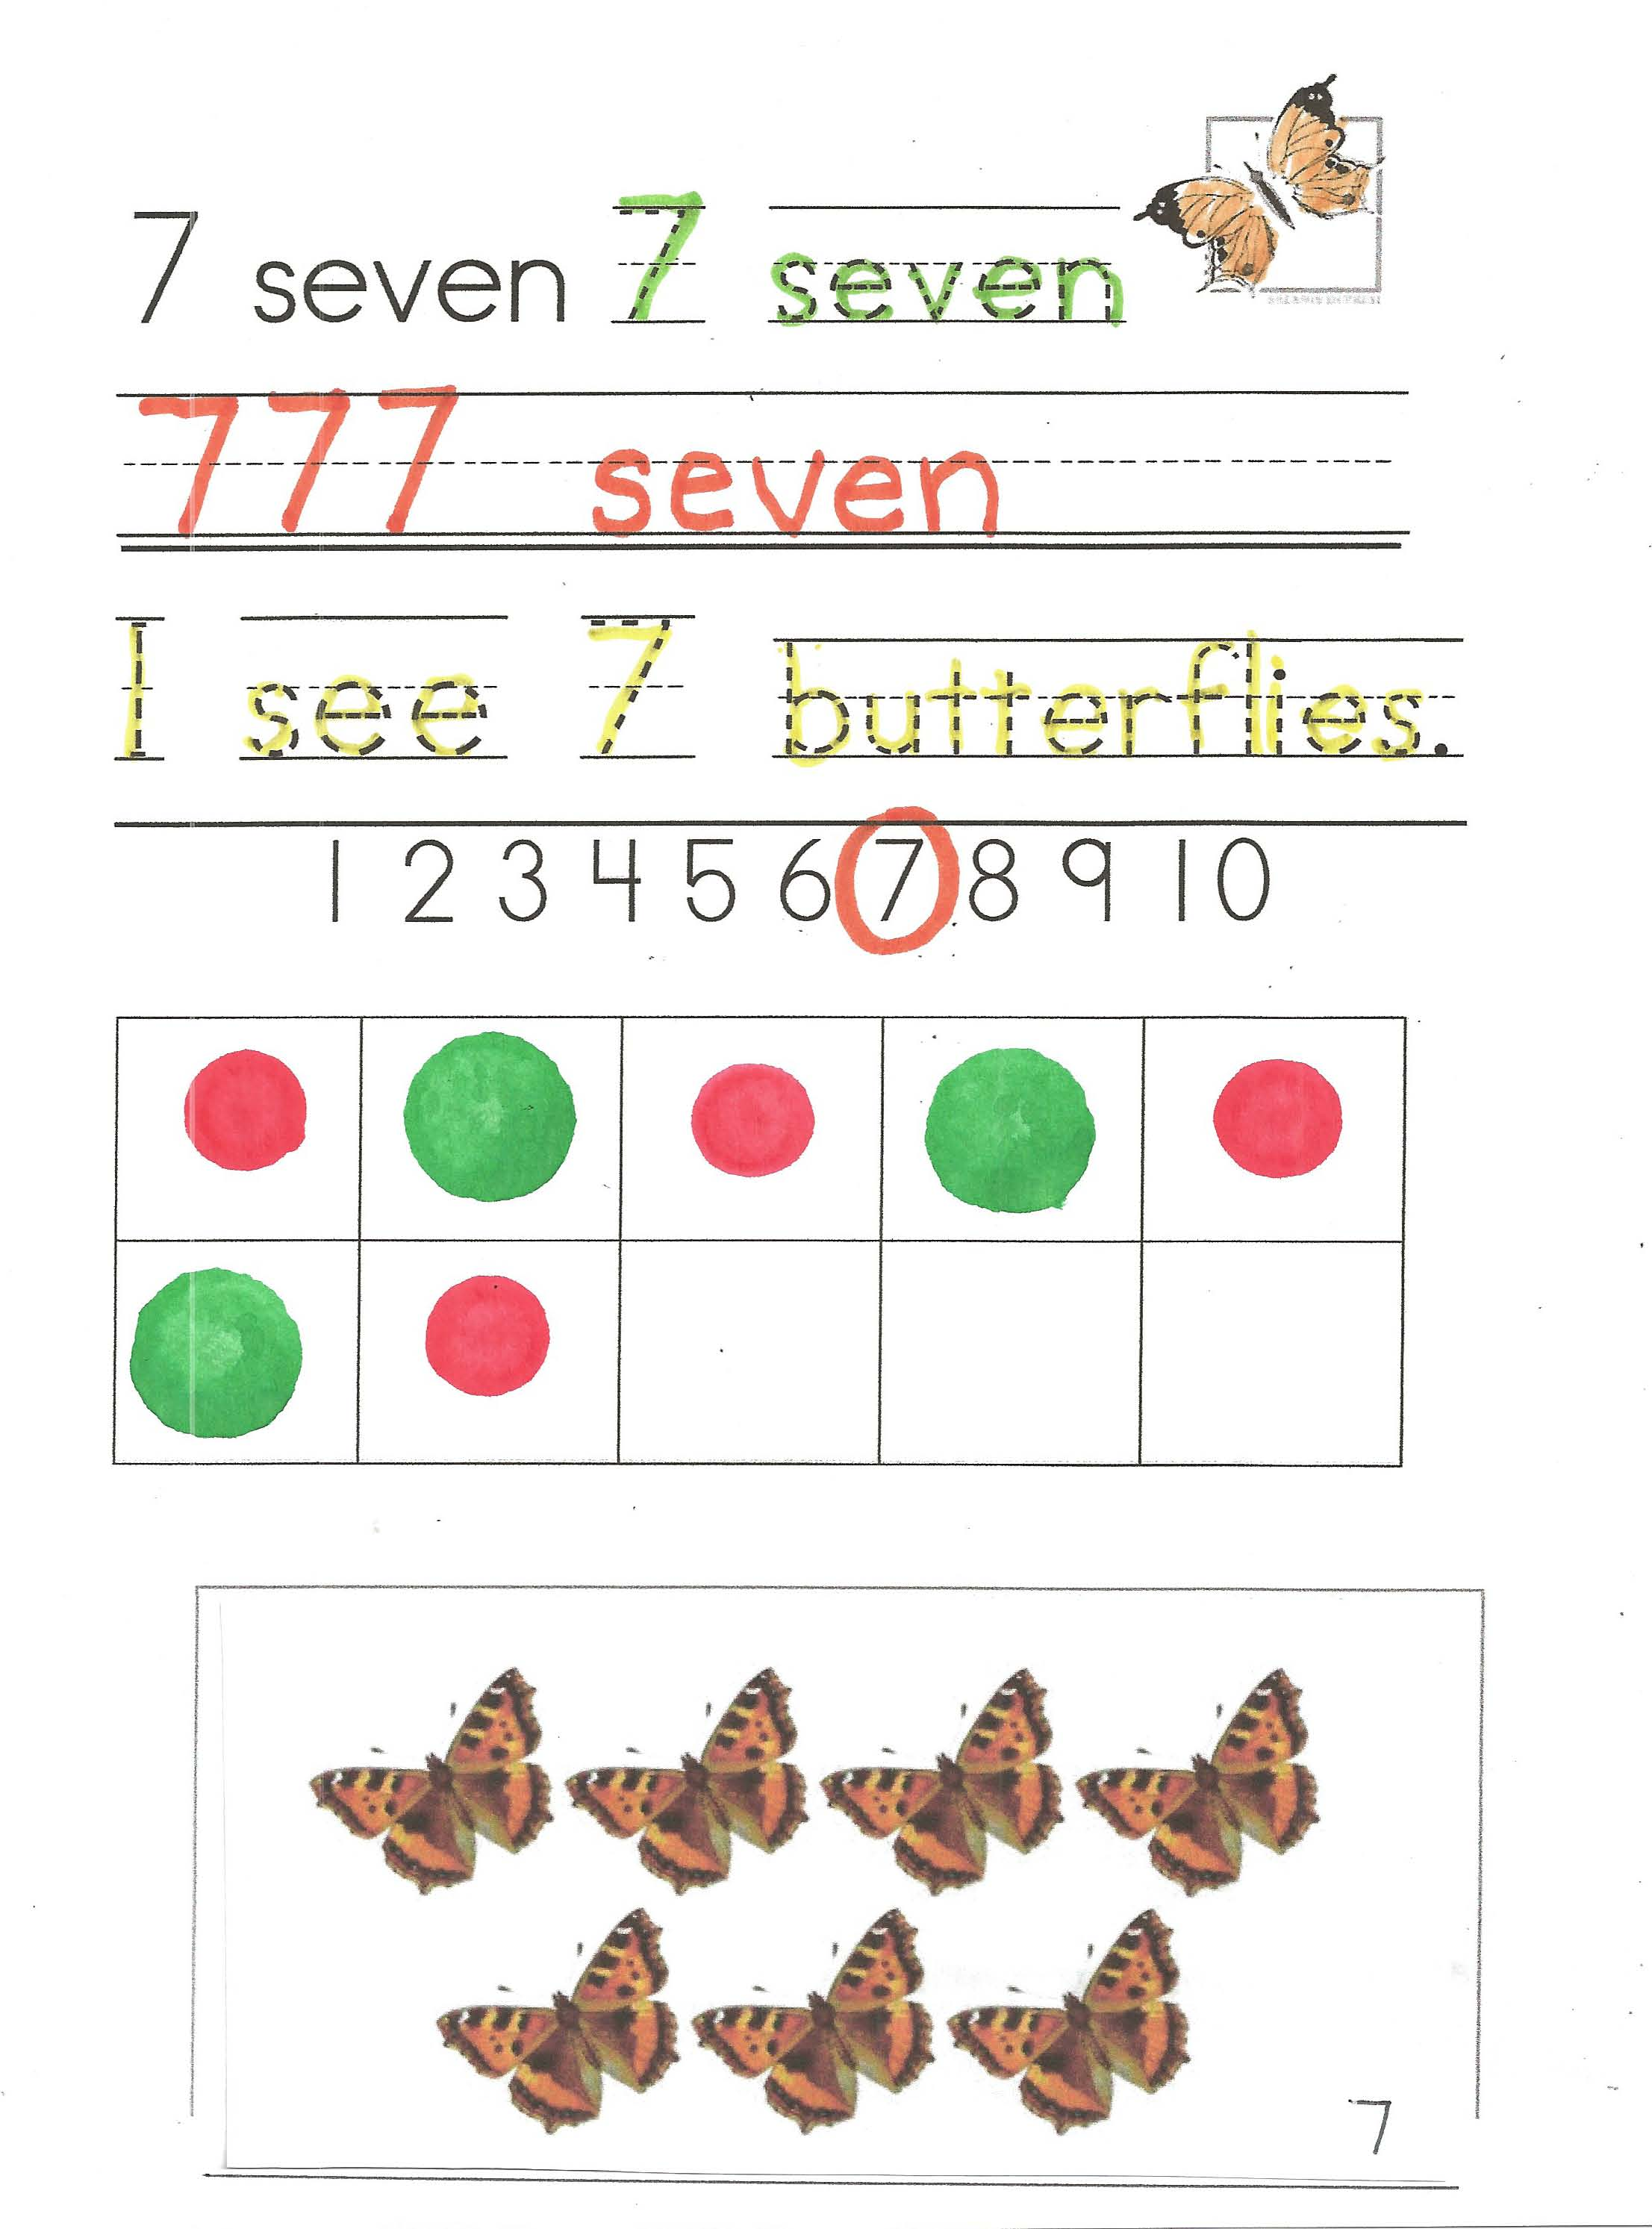 glyphs,easy readers, Making Class Books, math centers, Daily 5 activities, Writing prompts for preschool kindergarten and first grade, Butterfly Activities, butterfly booklet, butterfly rhyming words, compound word activities, rhyming word activities, butterfly glyph, spring glyphs, april glyphs, butterfly counting booklet, butterfly math activities, writing prompts for April, writing prompts for early elementary, butterfly bulletin boards,